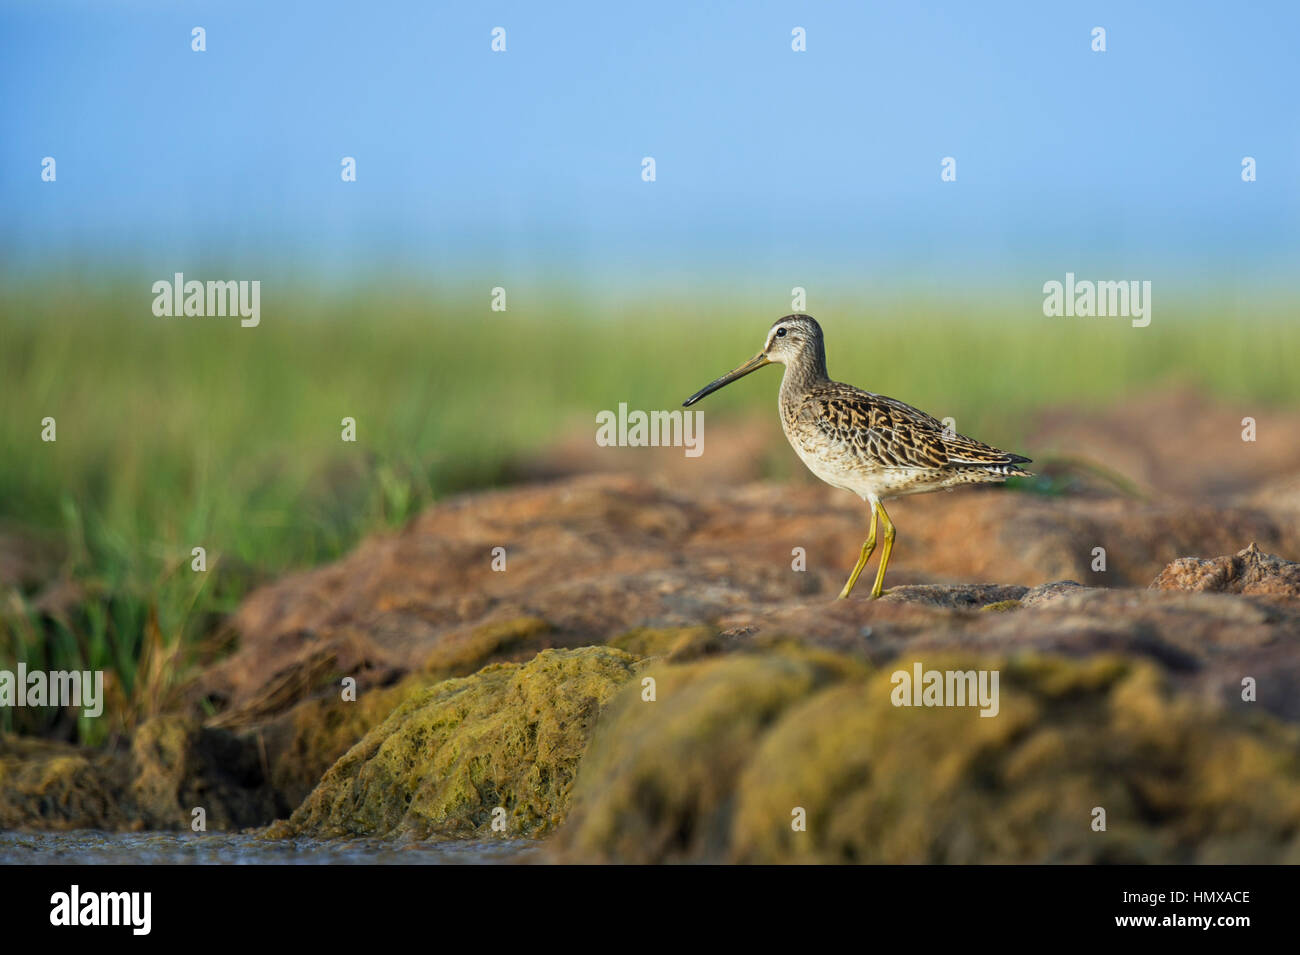 A Short-billed Dowitcher stands atop a mass of dried up marsh as it looks out over the area on a sunny summer morning. - Stock Image